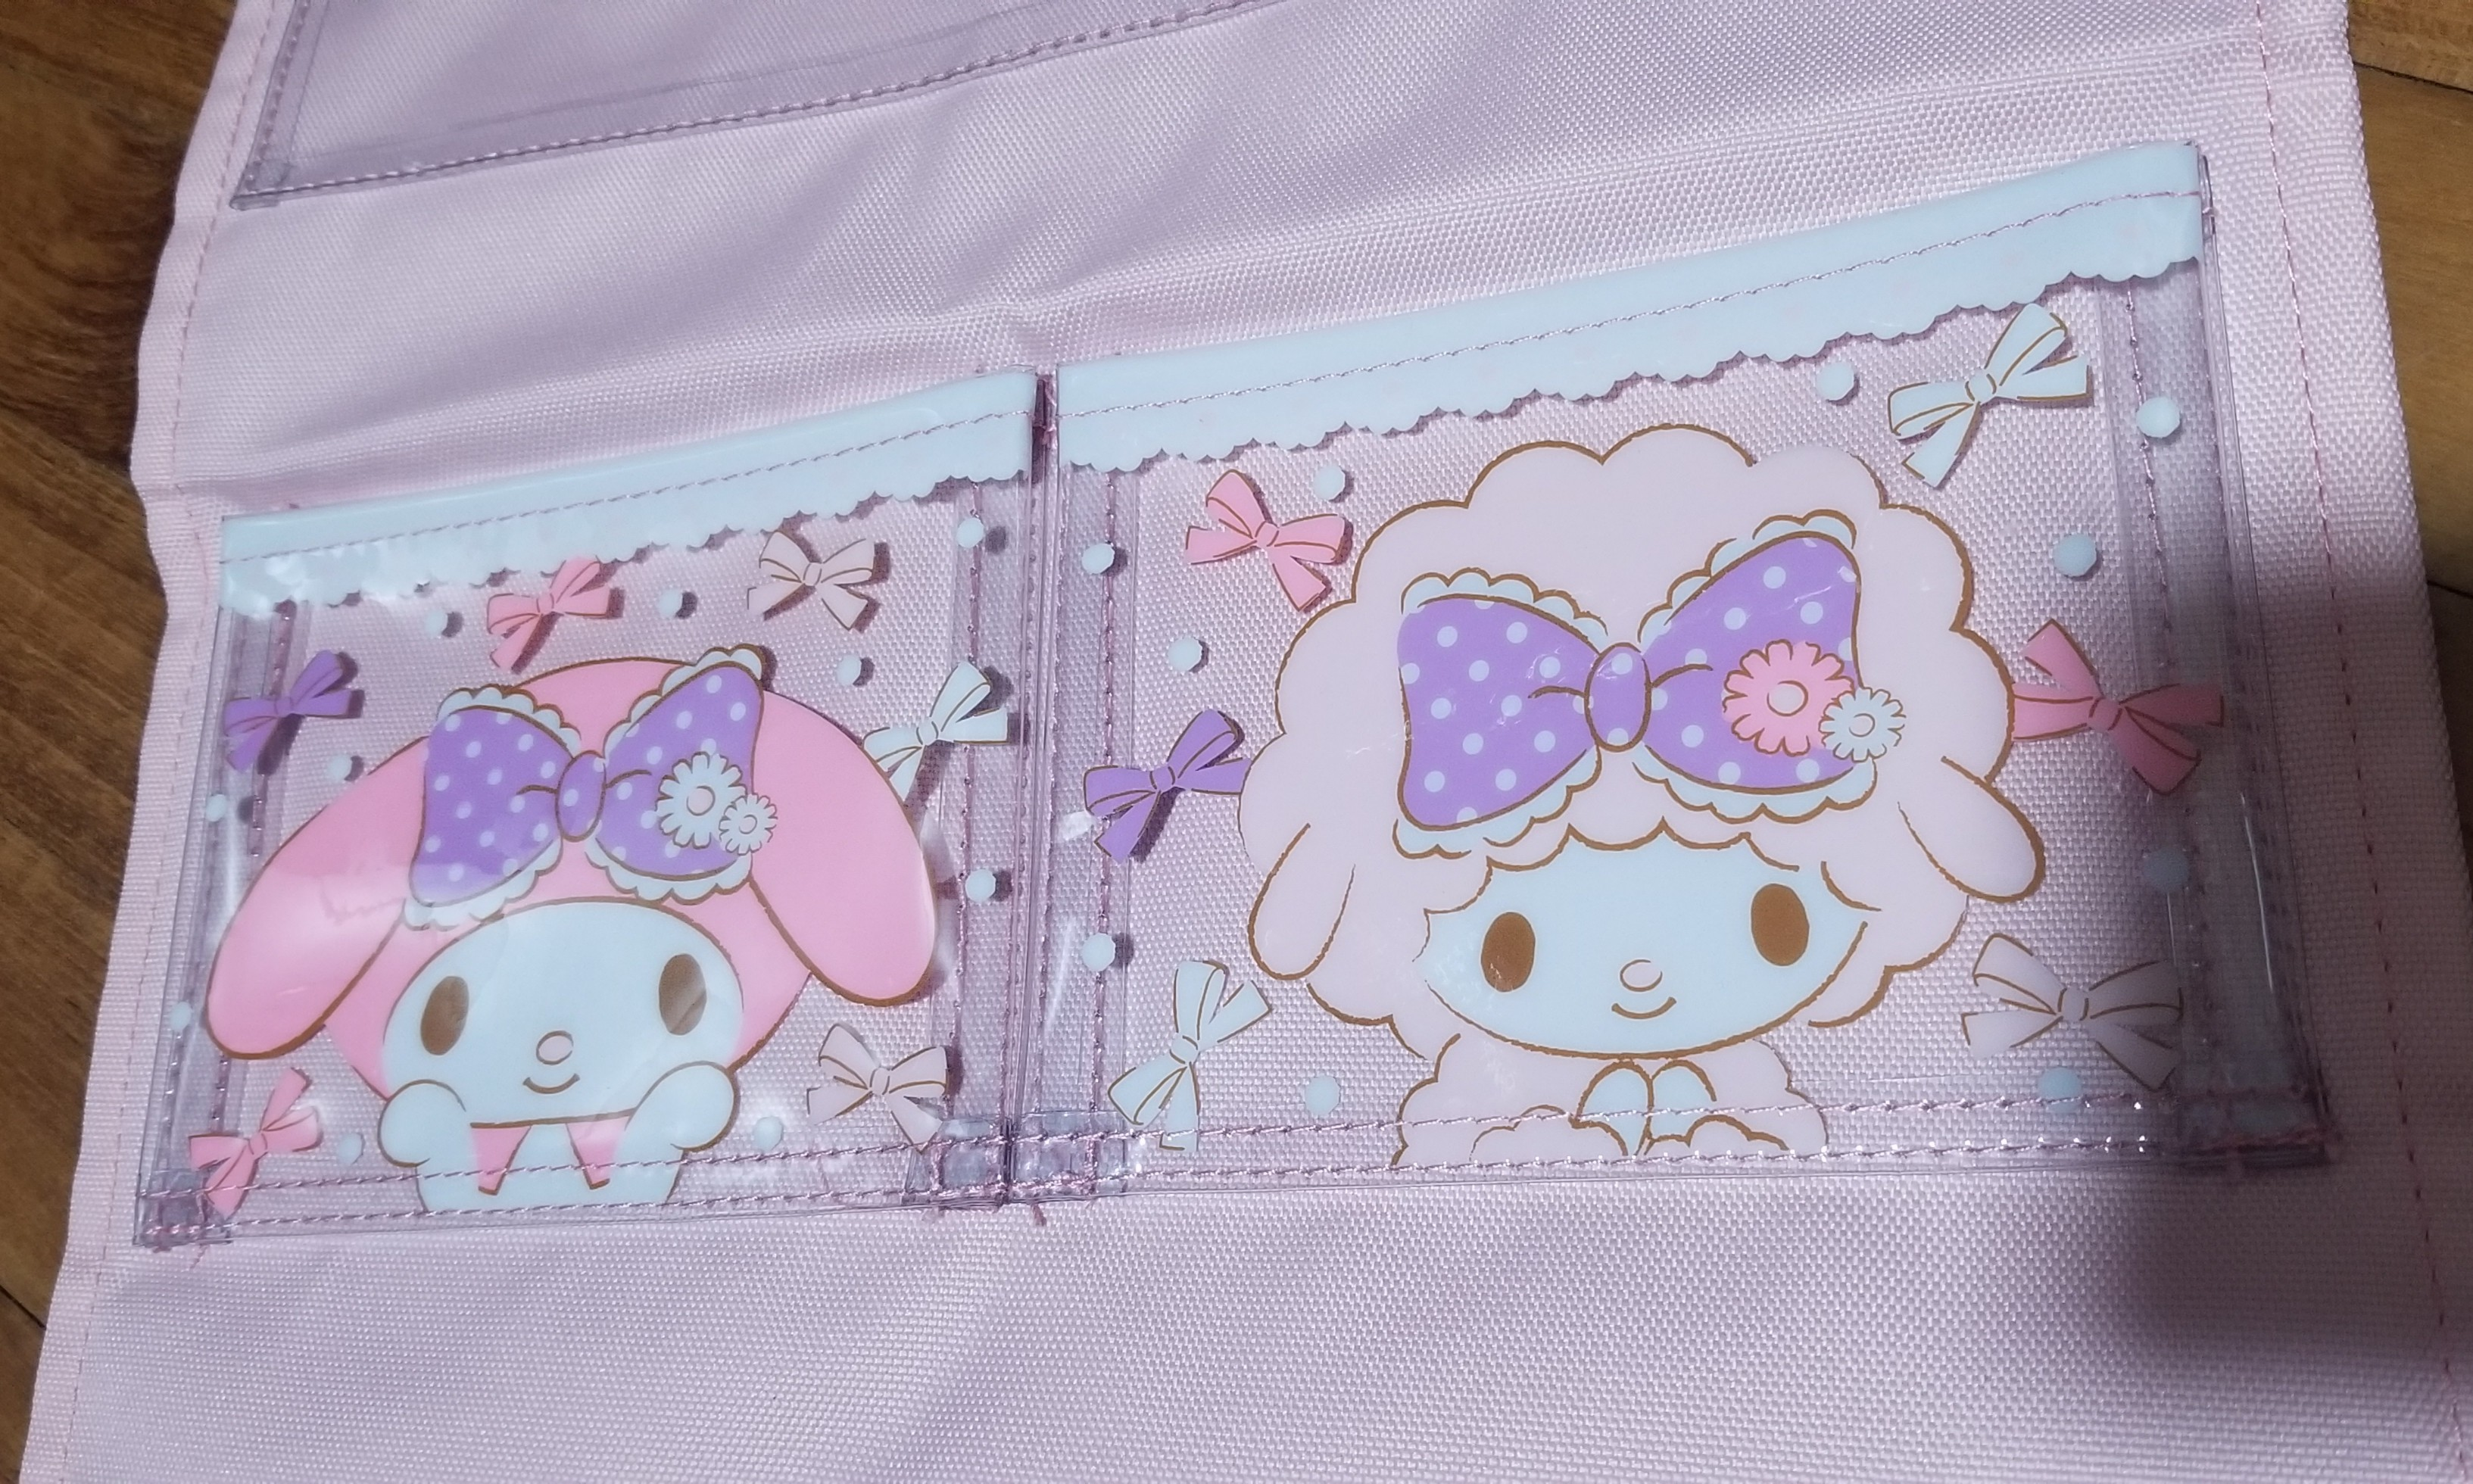 a4270abe7 My Melody hanging storage organiser, Everything Else on Carousell